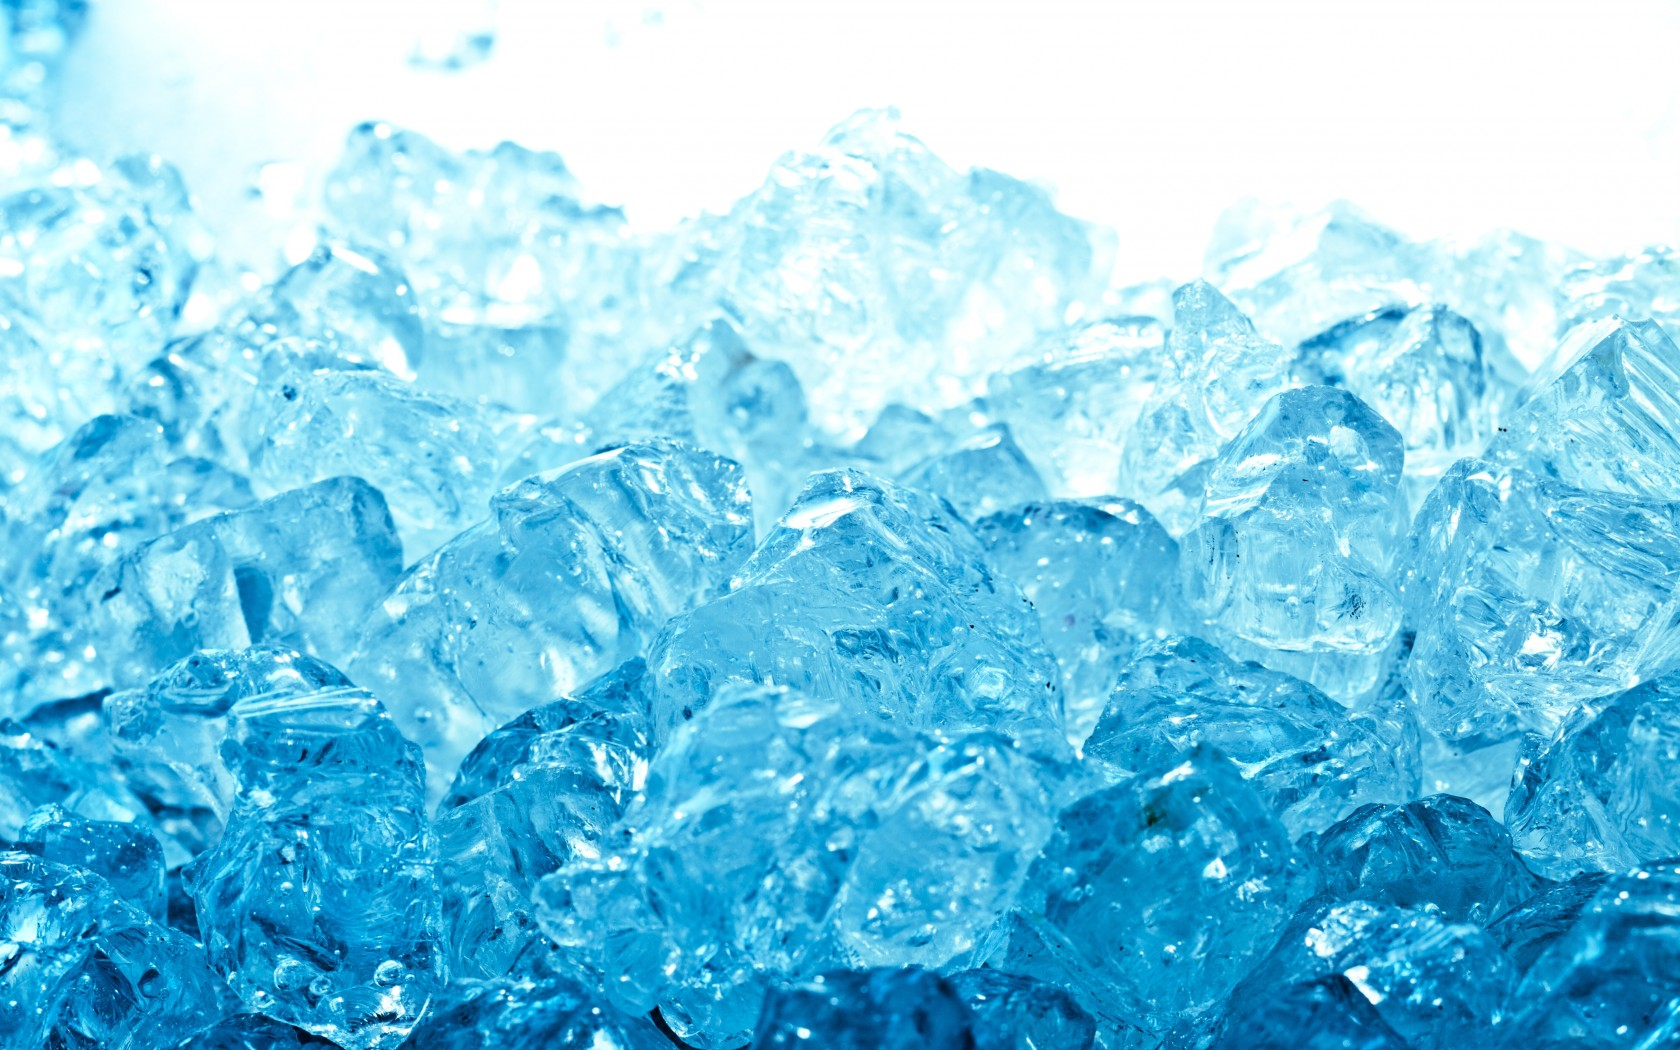 Texture ice, ice, download photo, frozen water, download texture ice, snow, frozen water